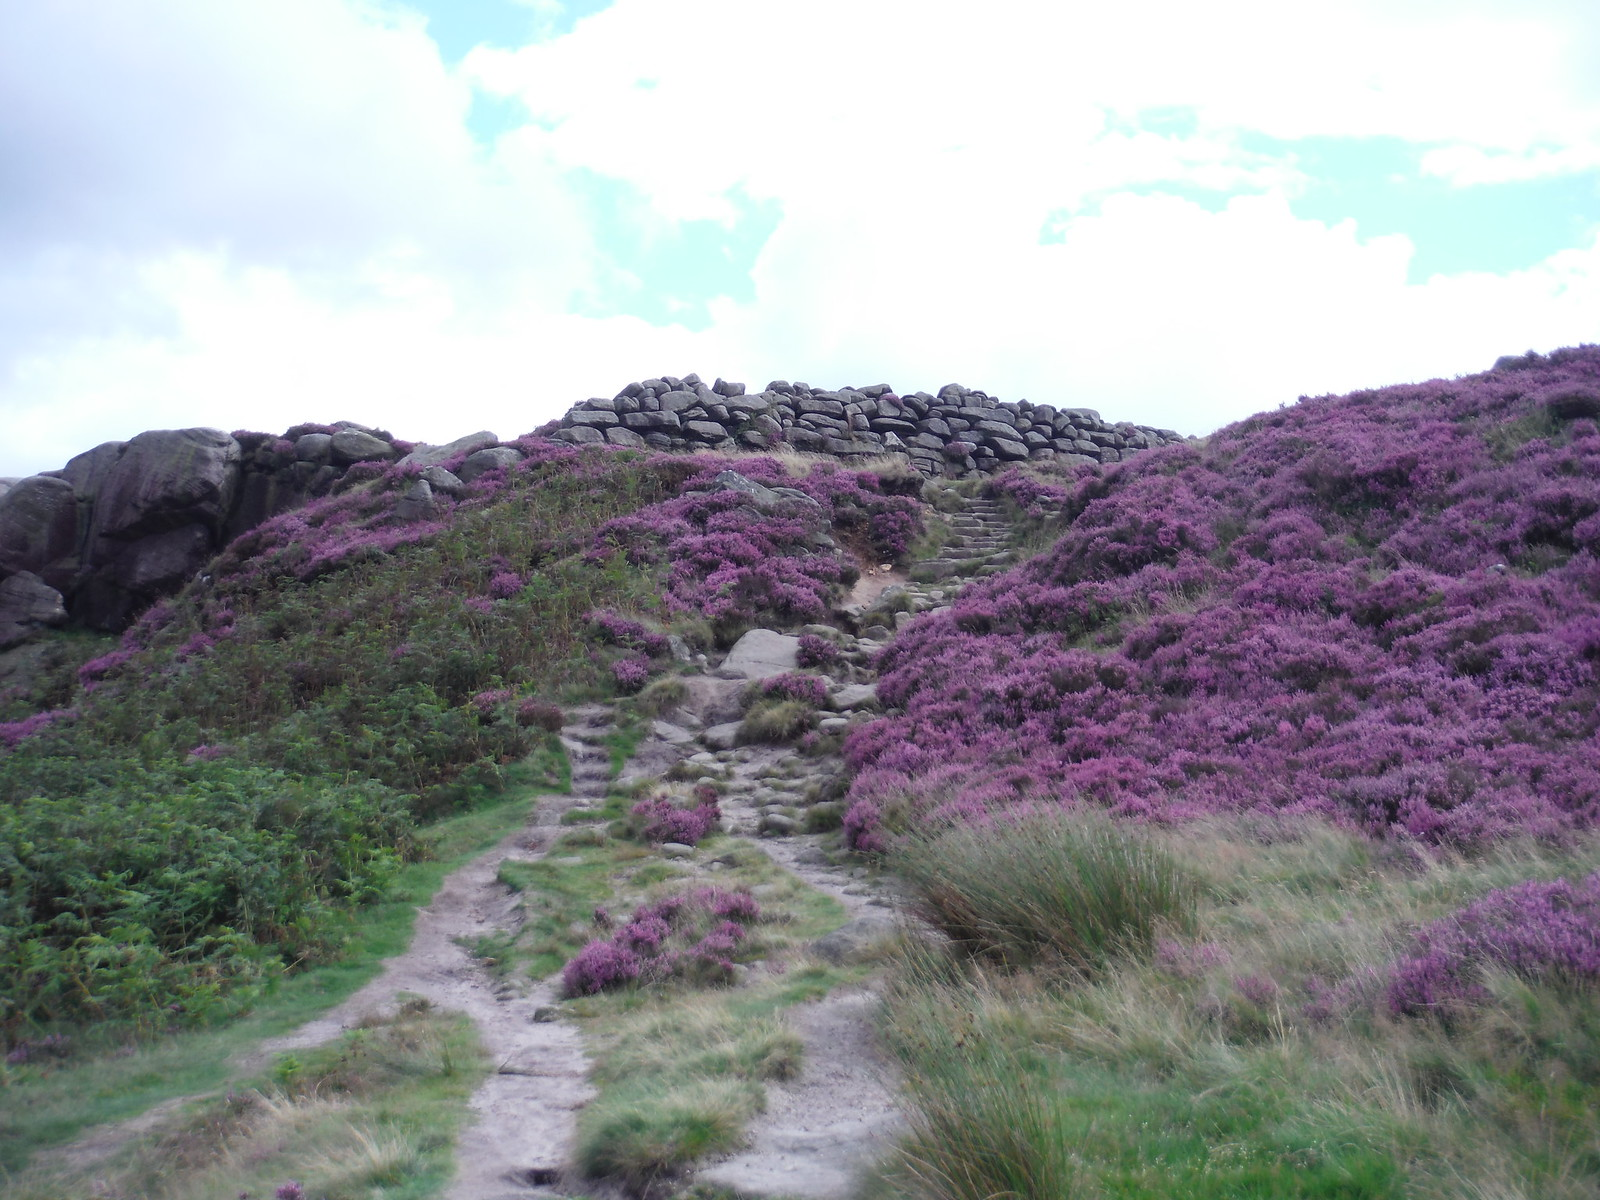 Carl Wark Entrance/Exit SWC Walk 266 - Sheffield to Bamford (via Burbage Rocks and Stanage Edge) or to Moscar Lodge [via Carl Wark and Higger Tor Alternative]